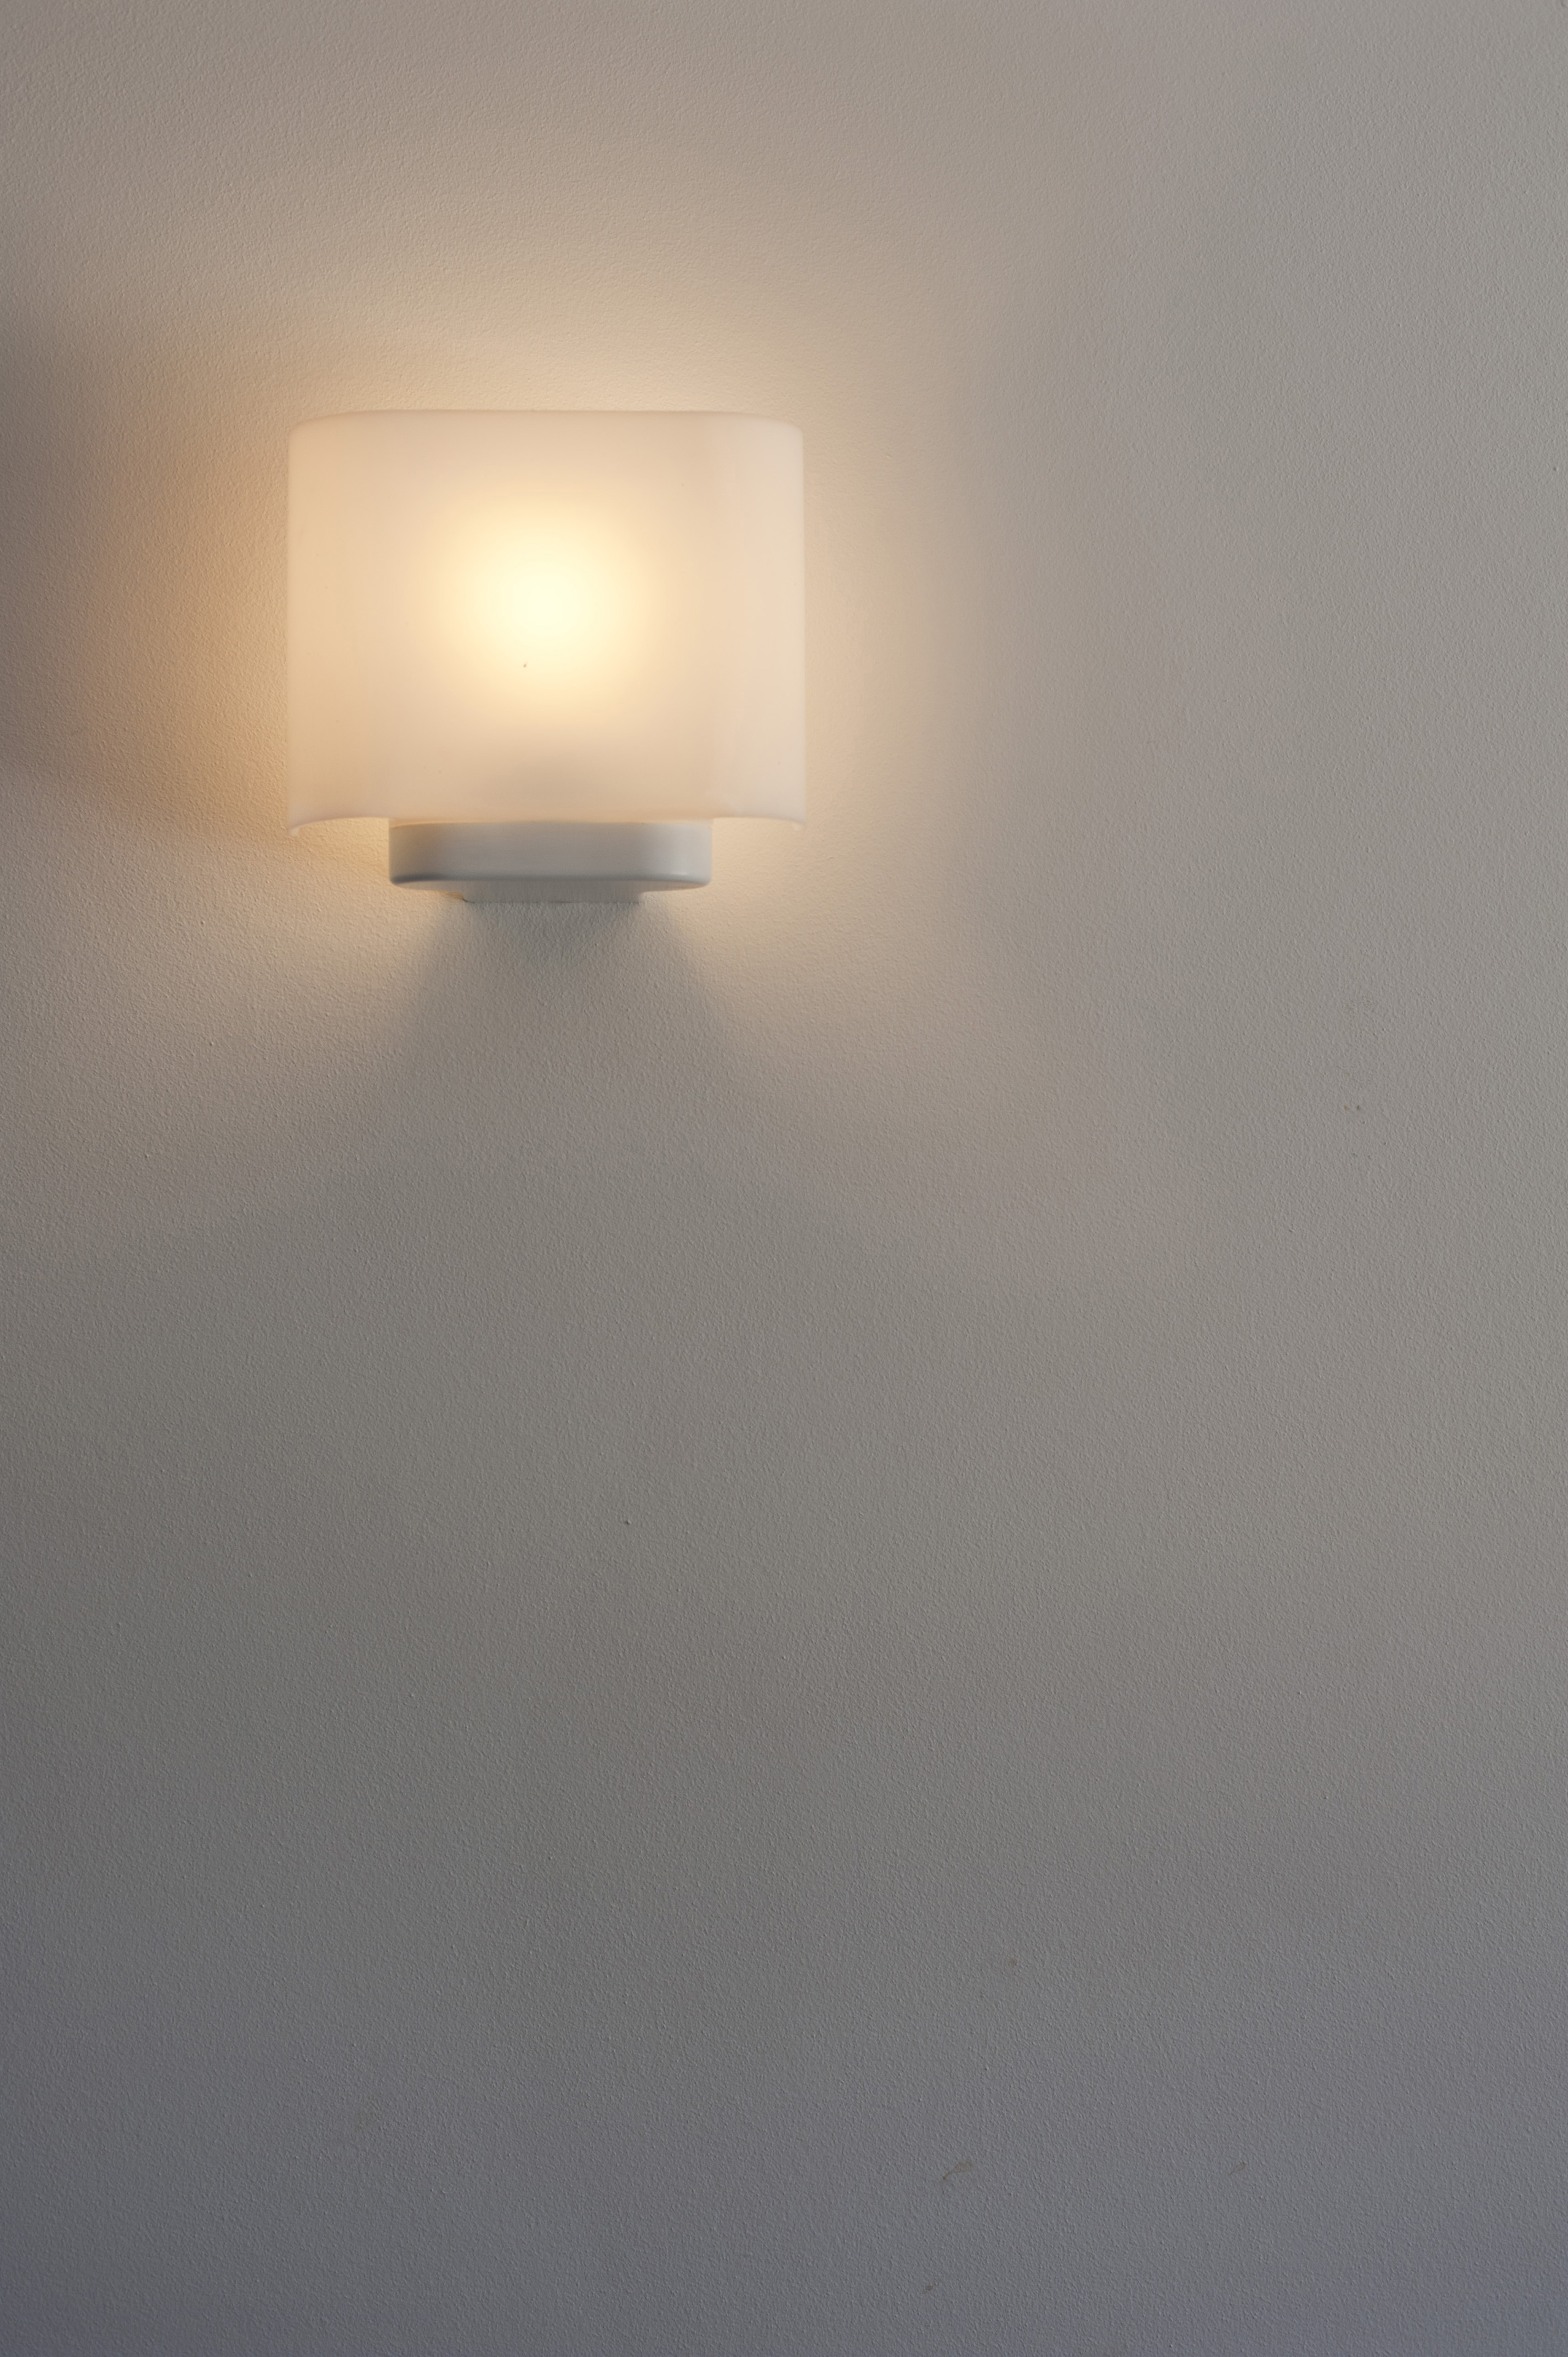 Single illuminated glowing wall sconce or wall light with a lampshade on a grey wall with copyspace